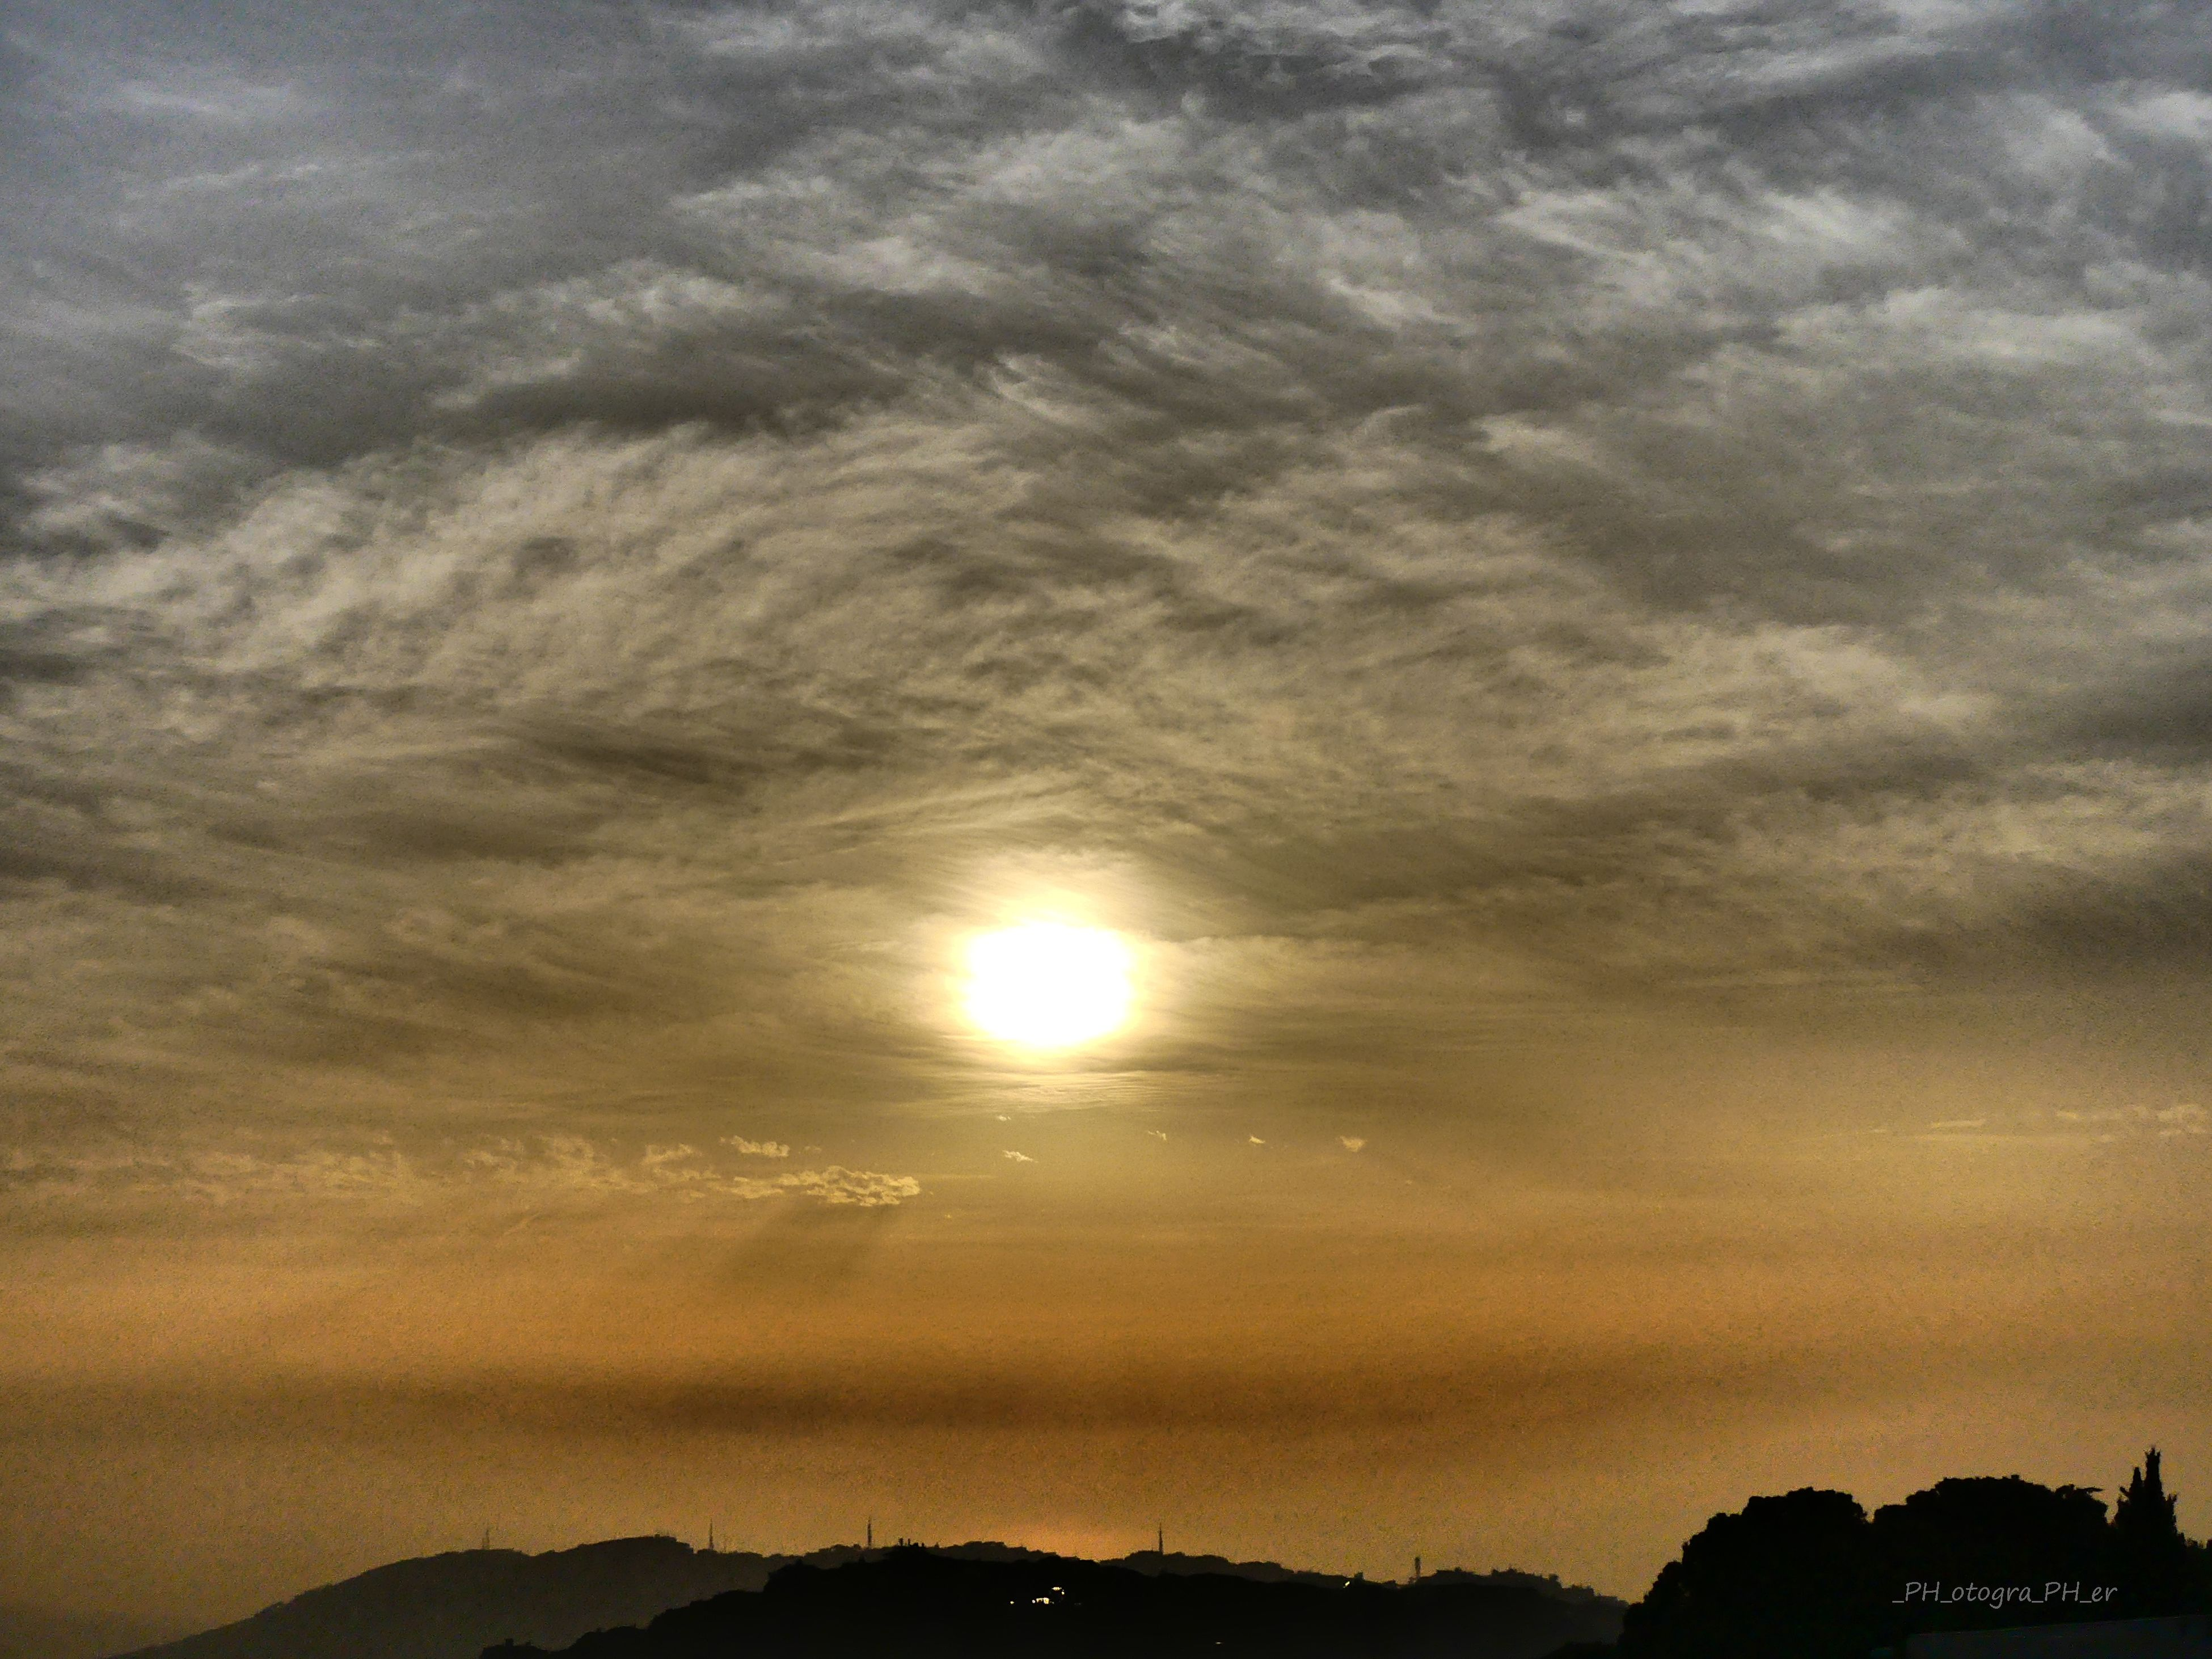 sunset, sky, nature, beauty in nature, sun, cloud - sky, scenics, no people, tranquility, low angle view, outdoors, tranquil scene, day